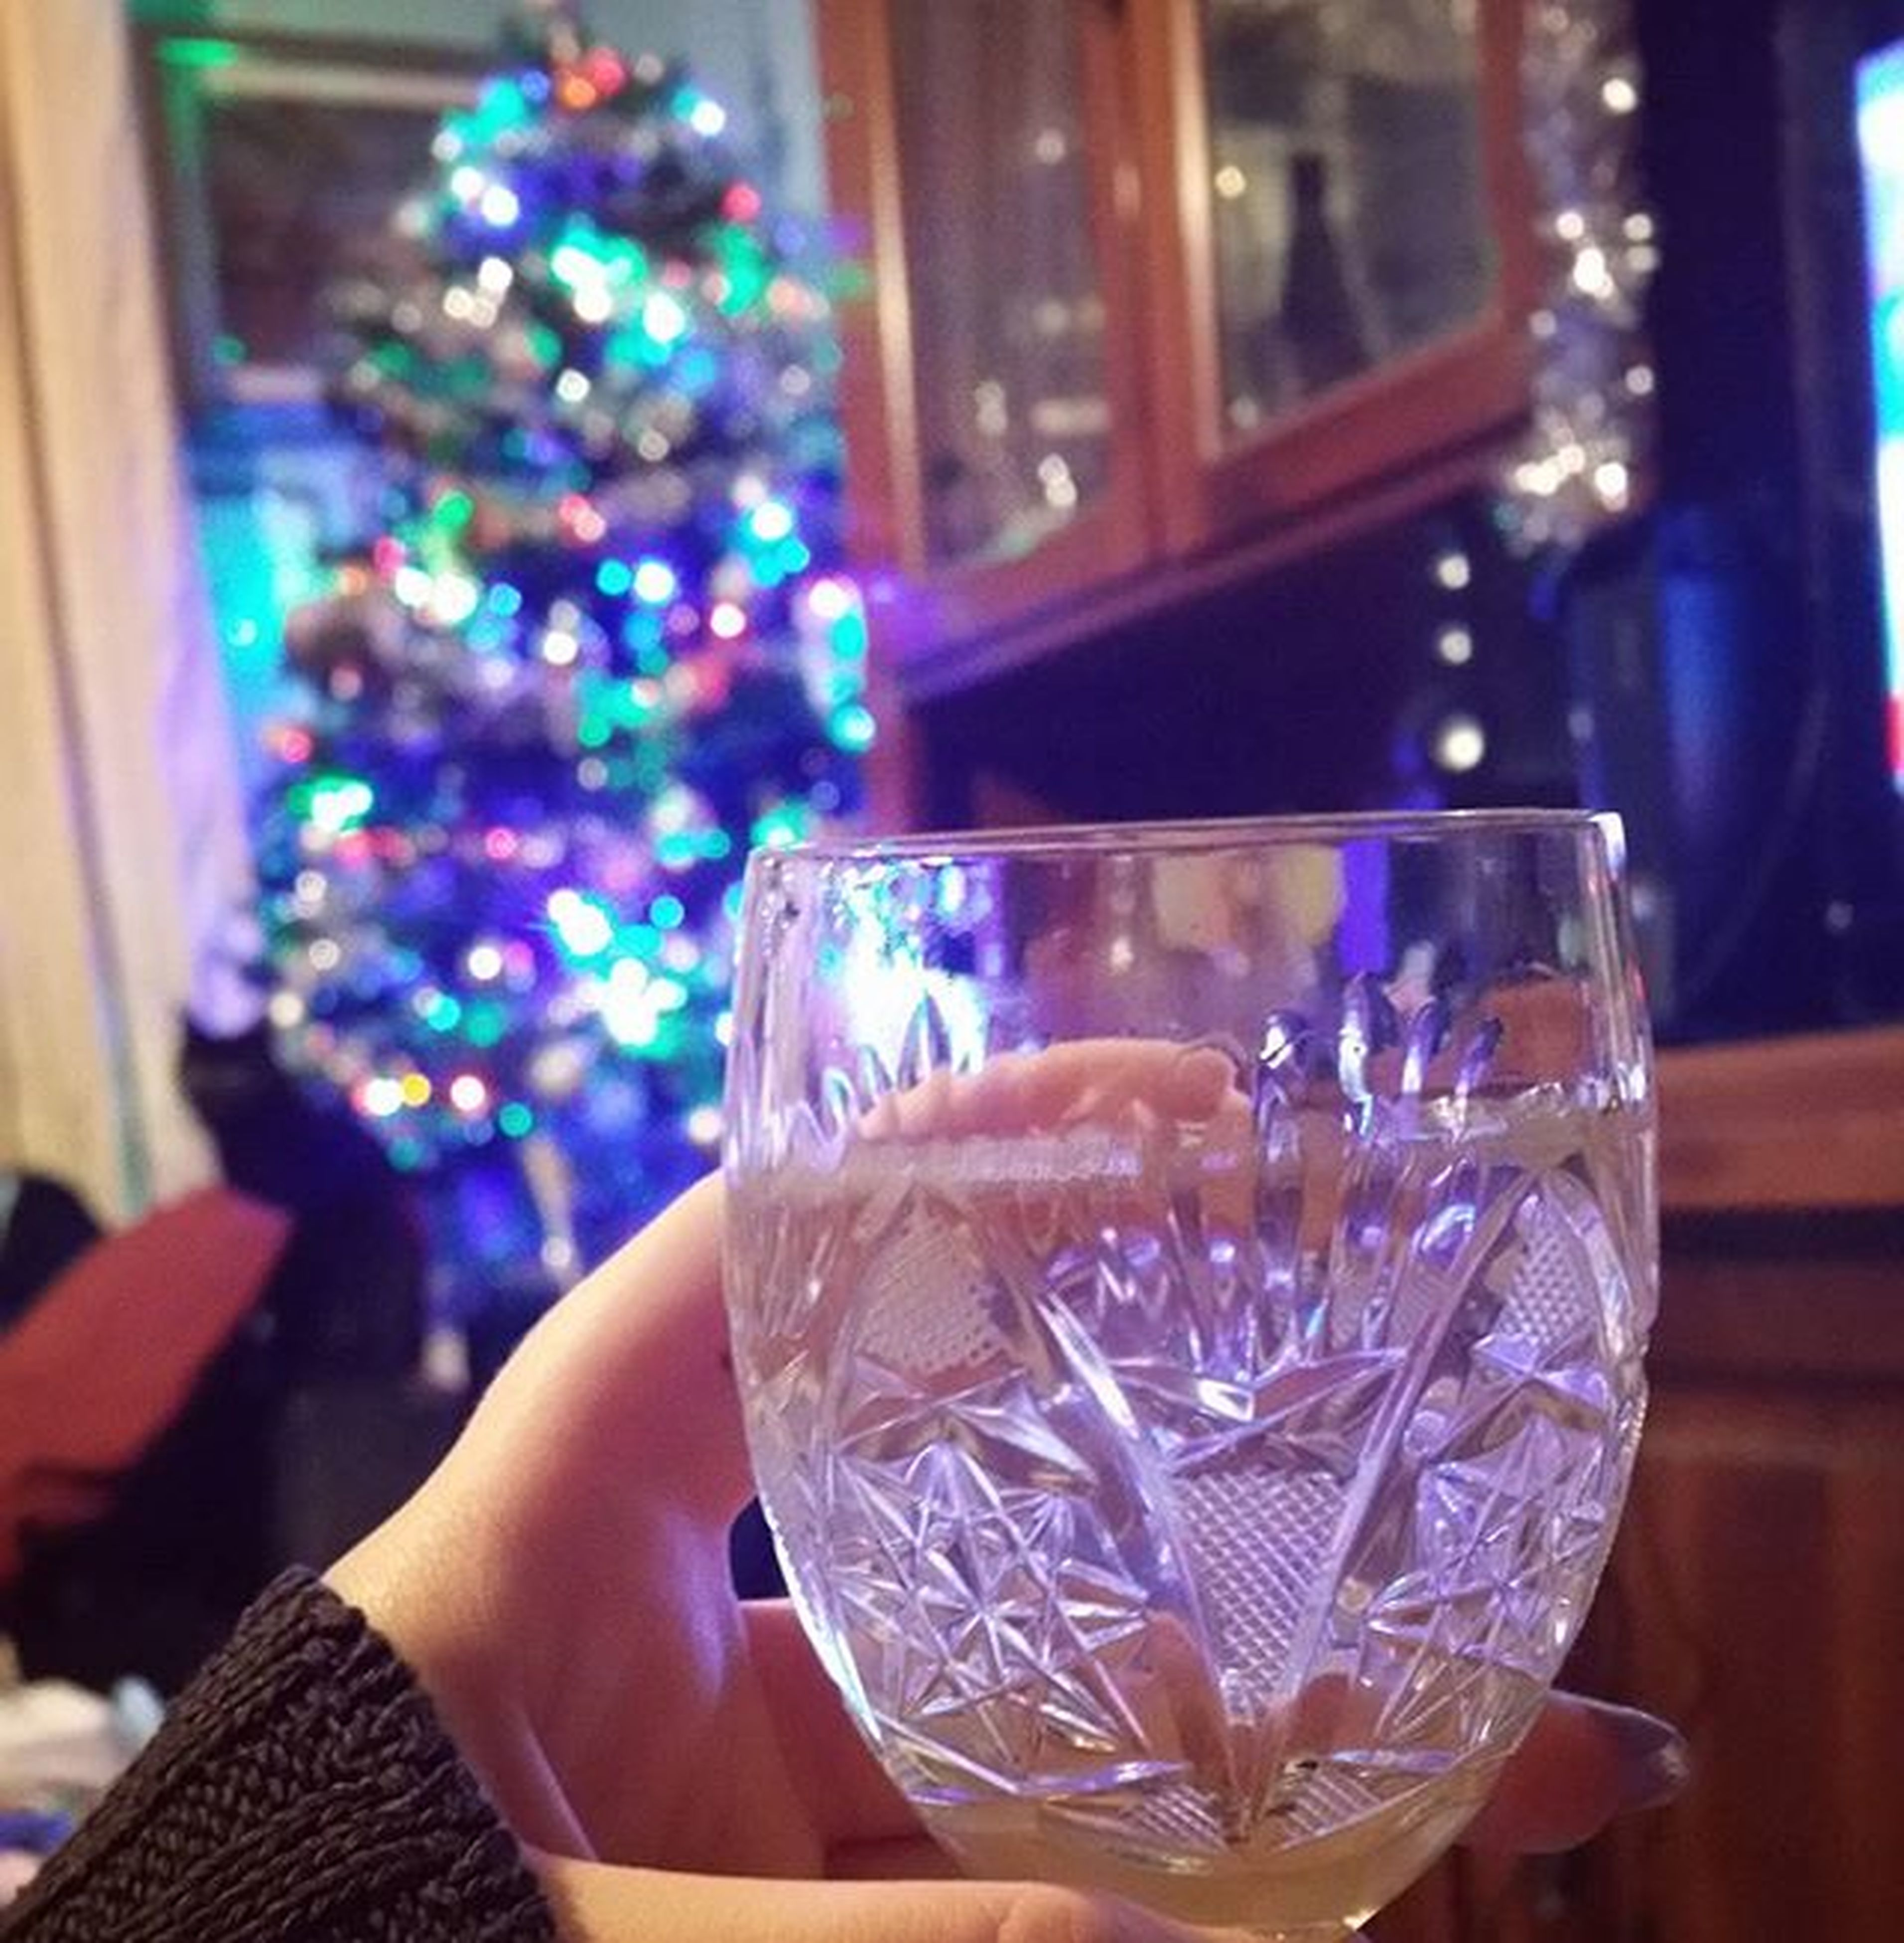 drink, refreshment, food and drink, focus on foreground, drinking glass, freshness, glass - material, holding, close-up, person, transparent, lifestyles, indoors, alcohol, table, glass, wineglass, leisure activity